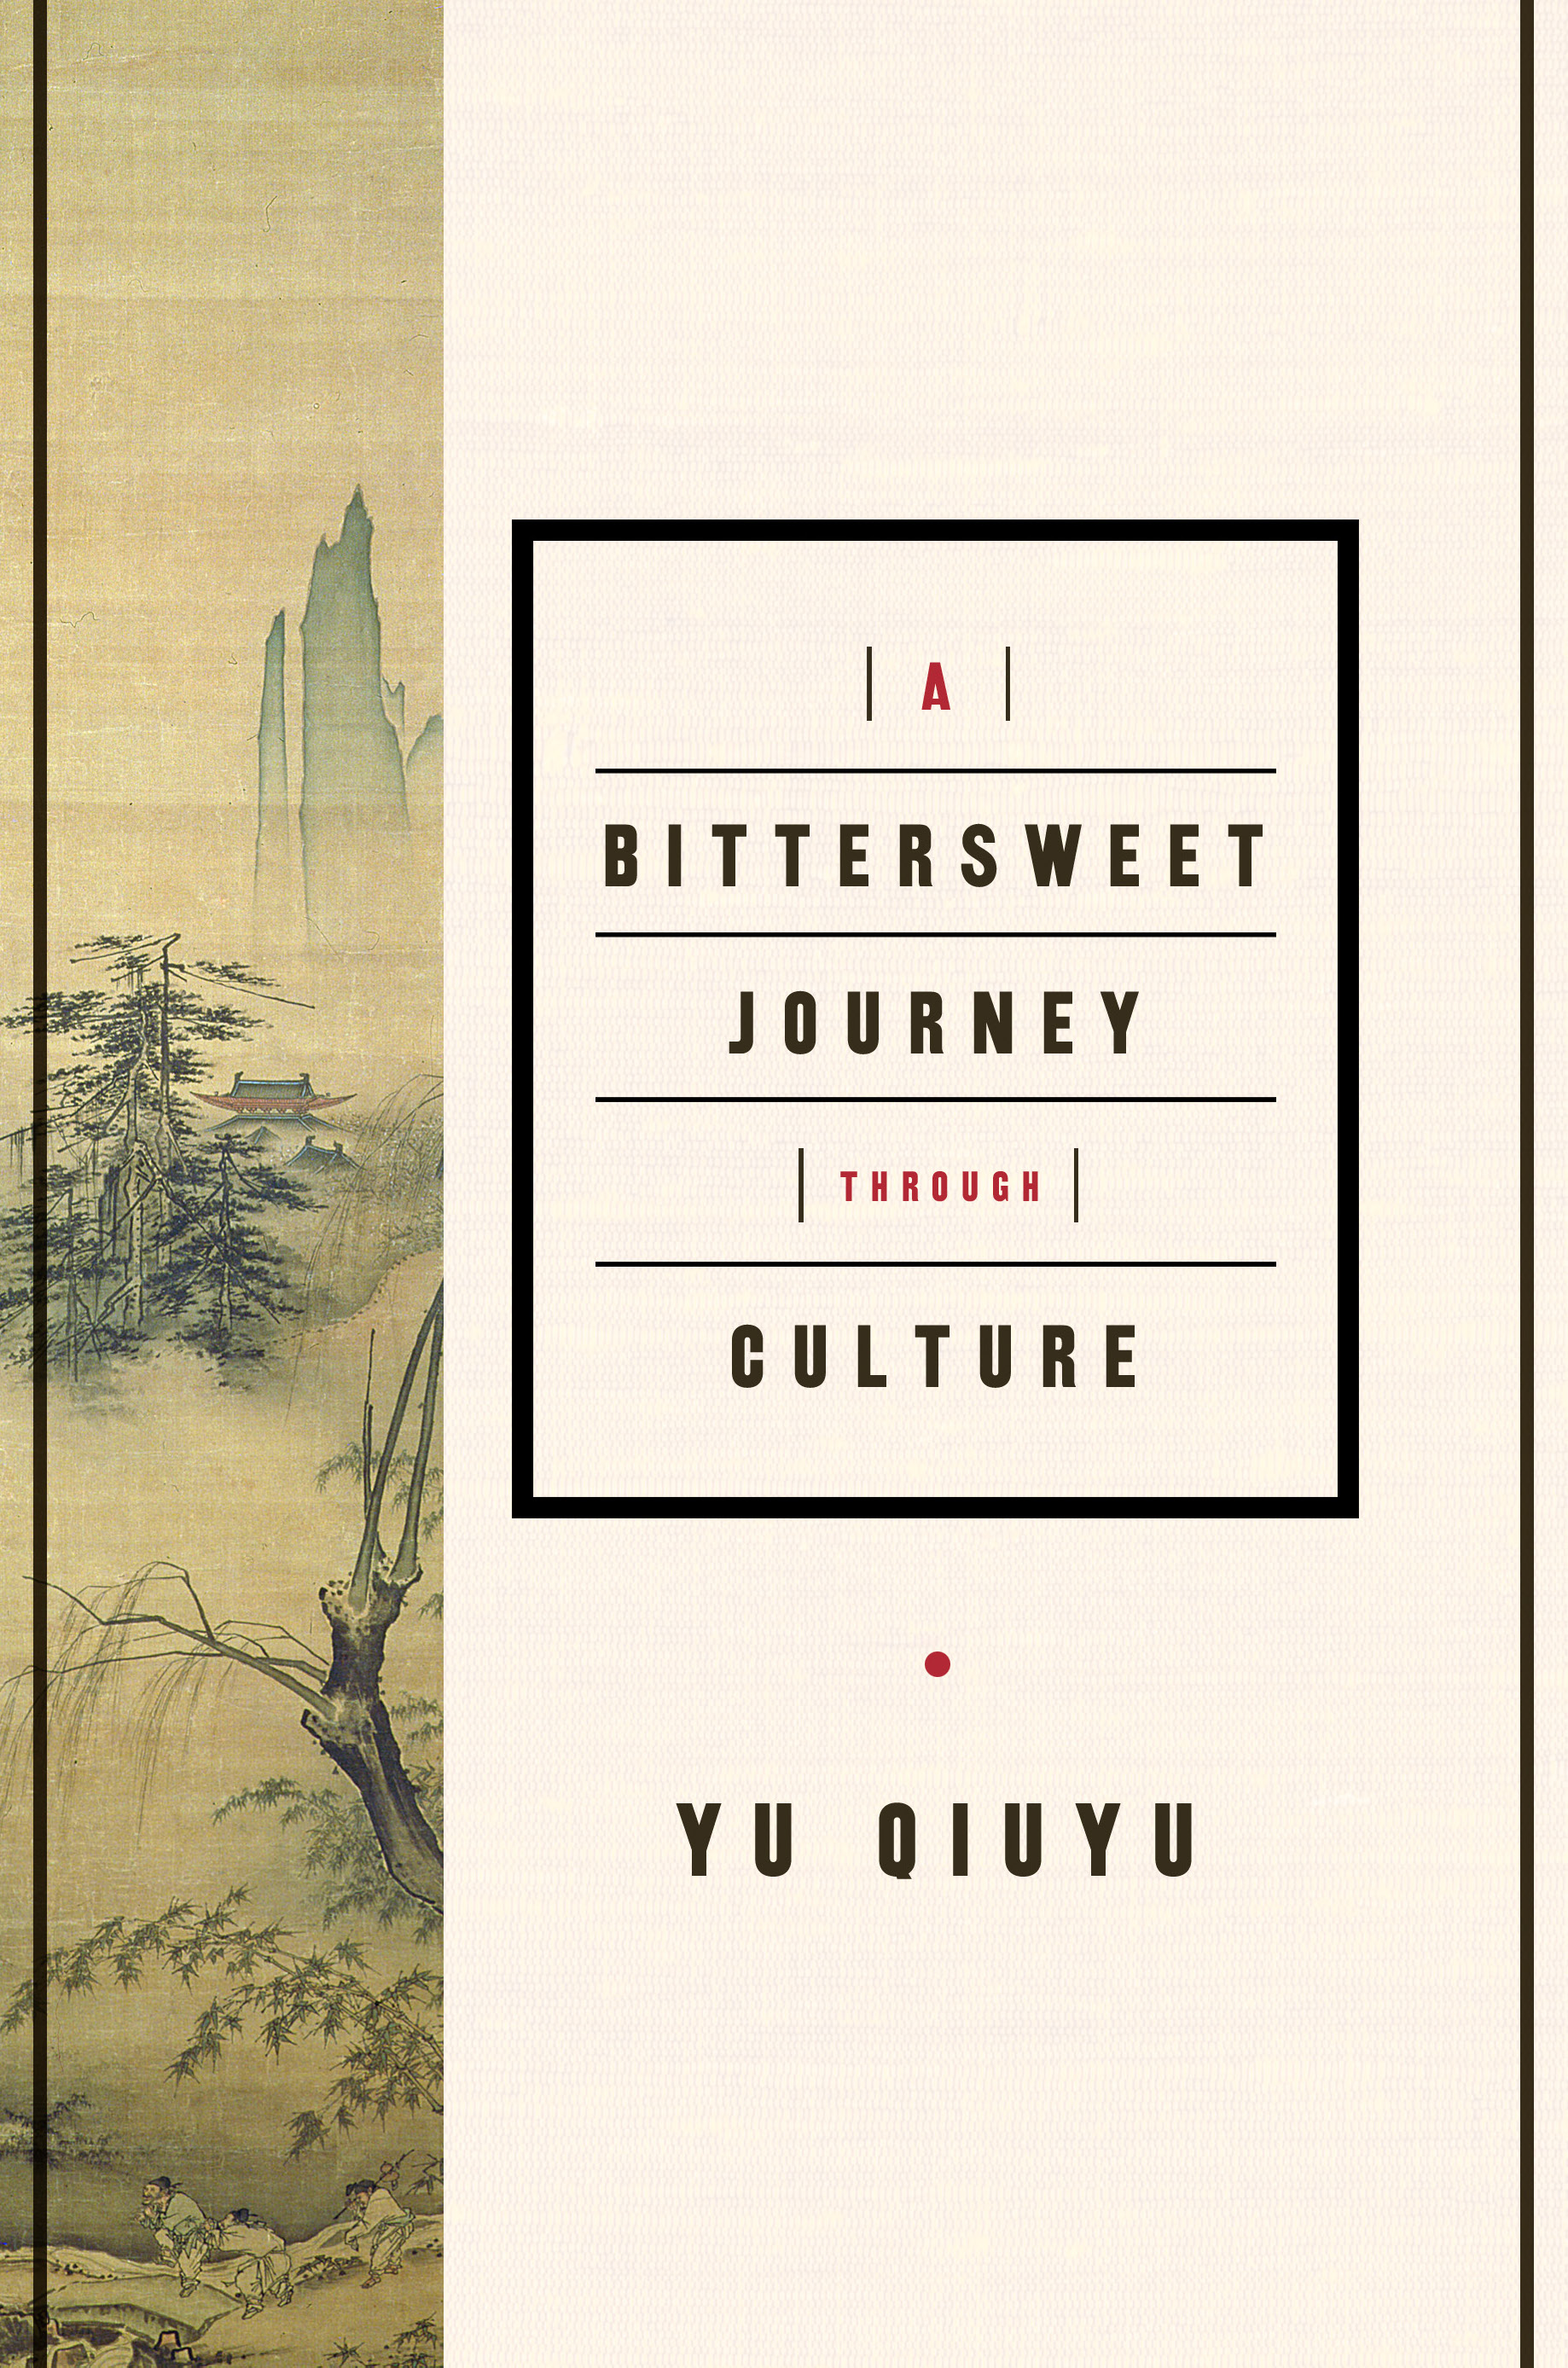 A Bittersweet Journey Through Culture